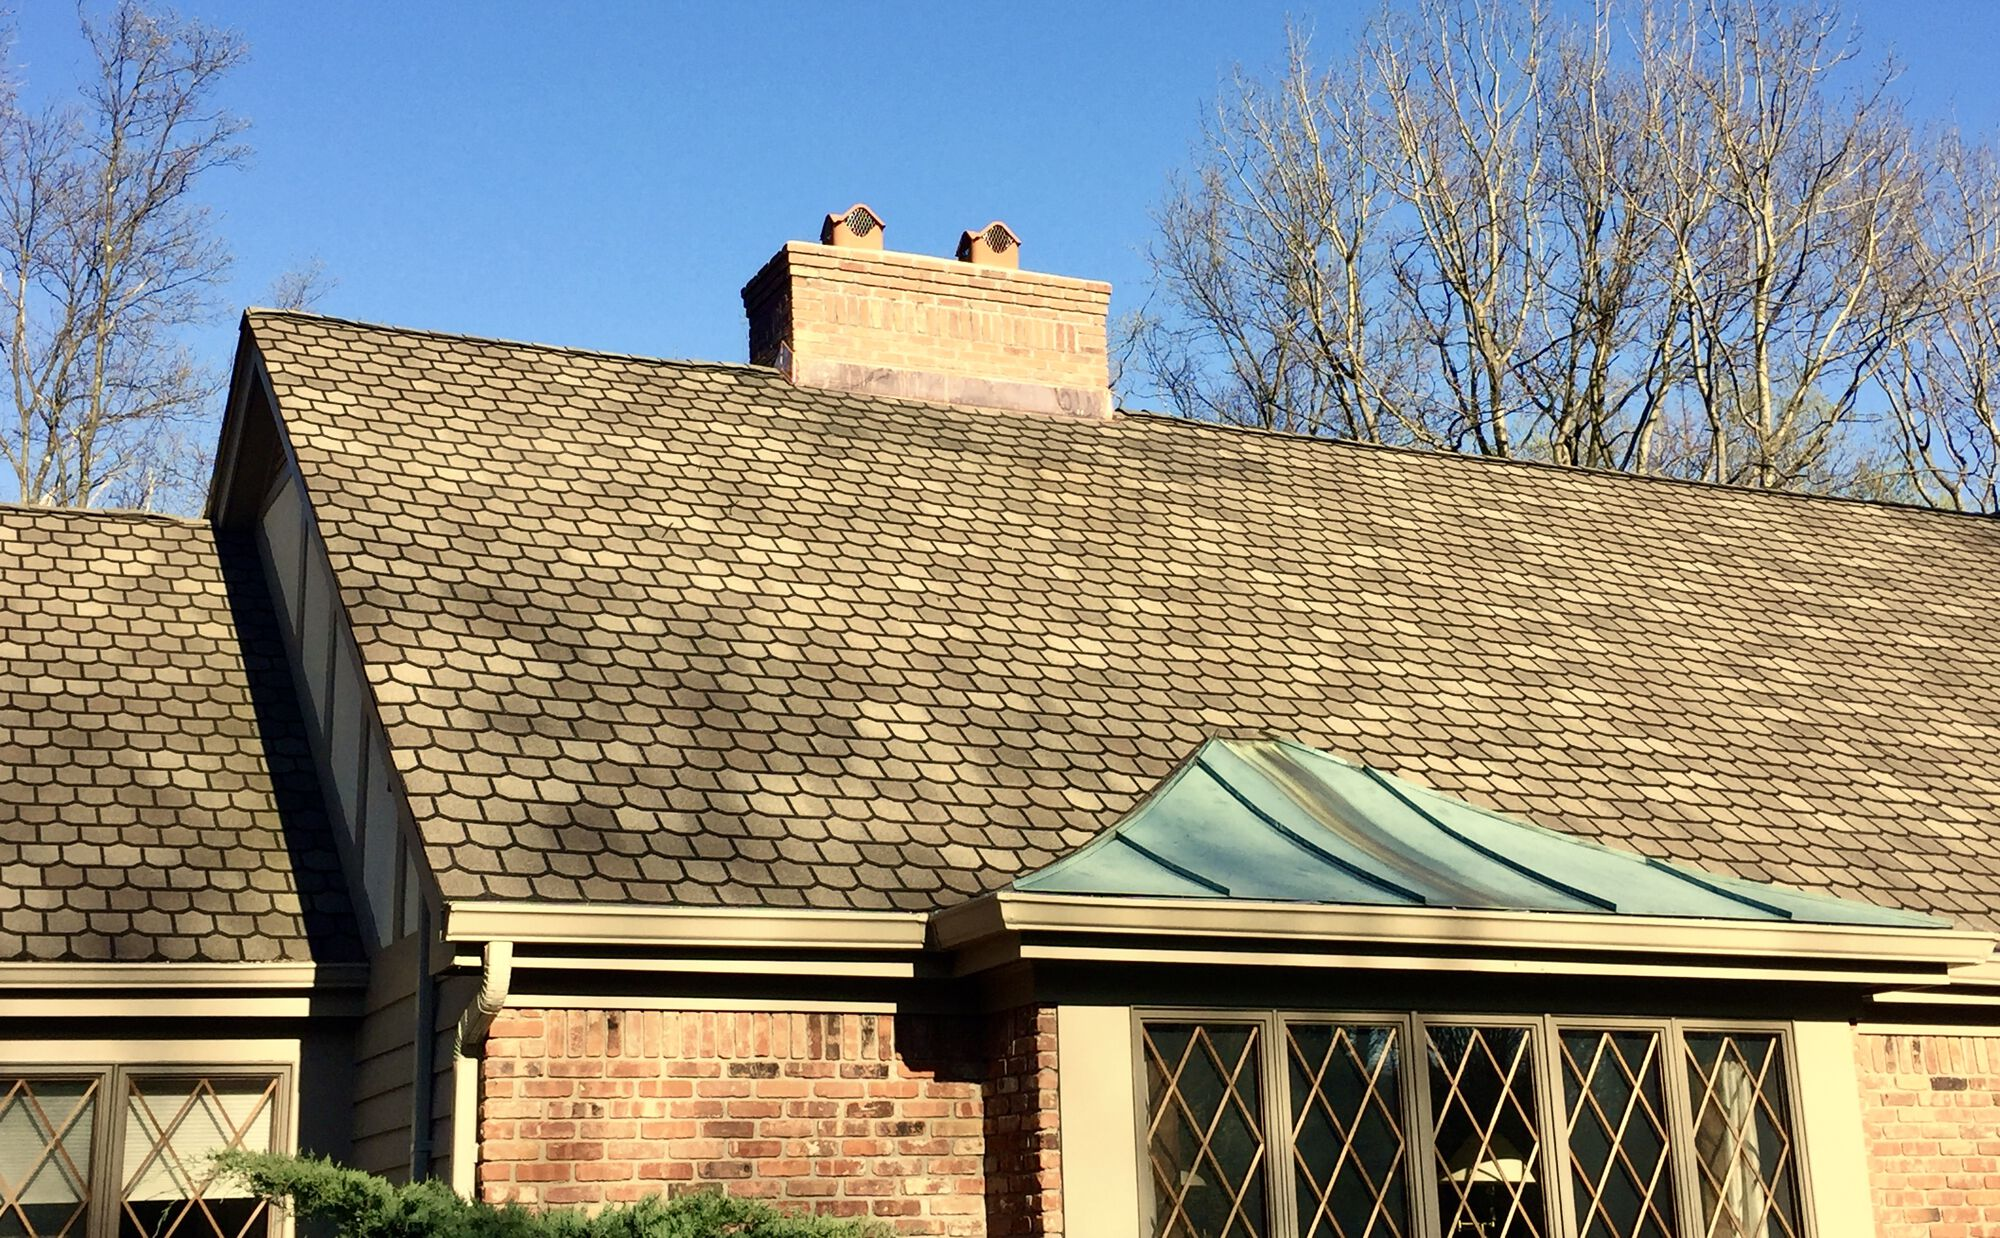 GAF Designer Lifetime Roofing System with Brick Chimney and Copper Flashing In Sussex County NJ